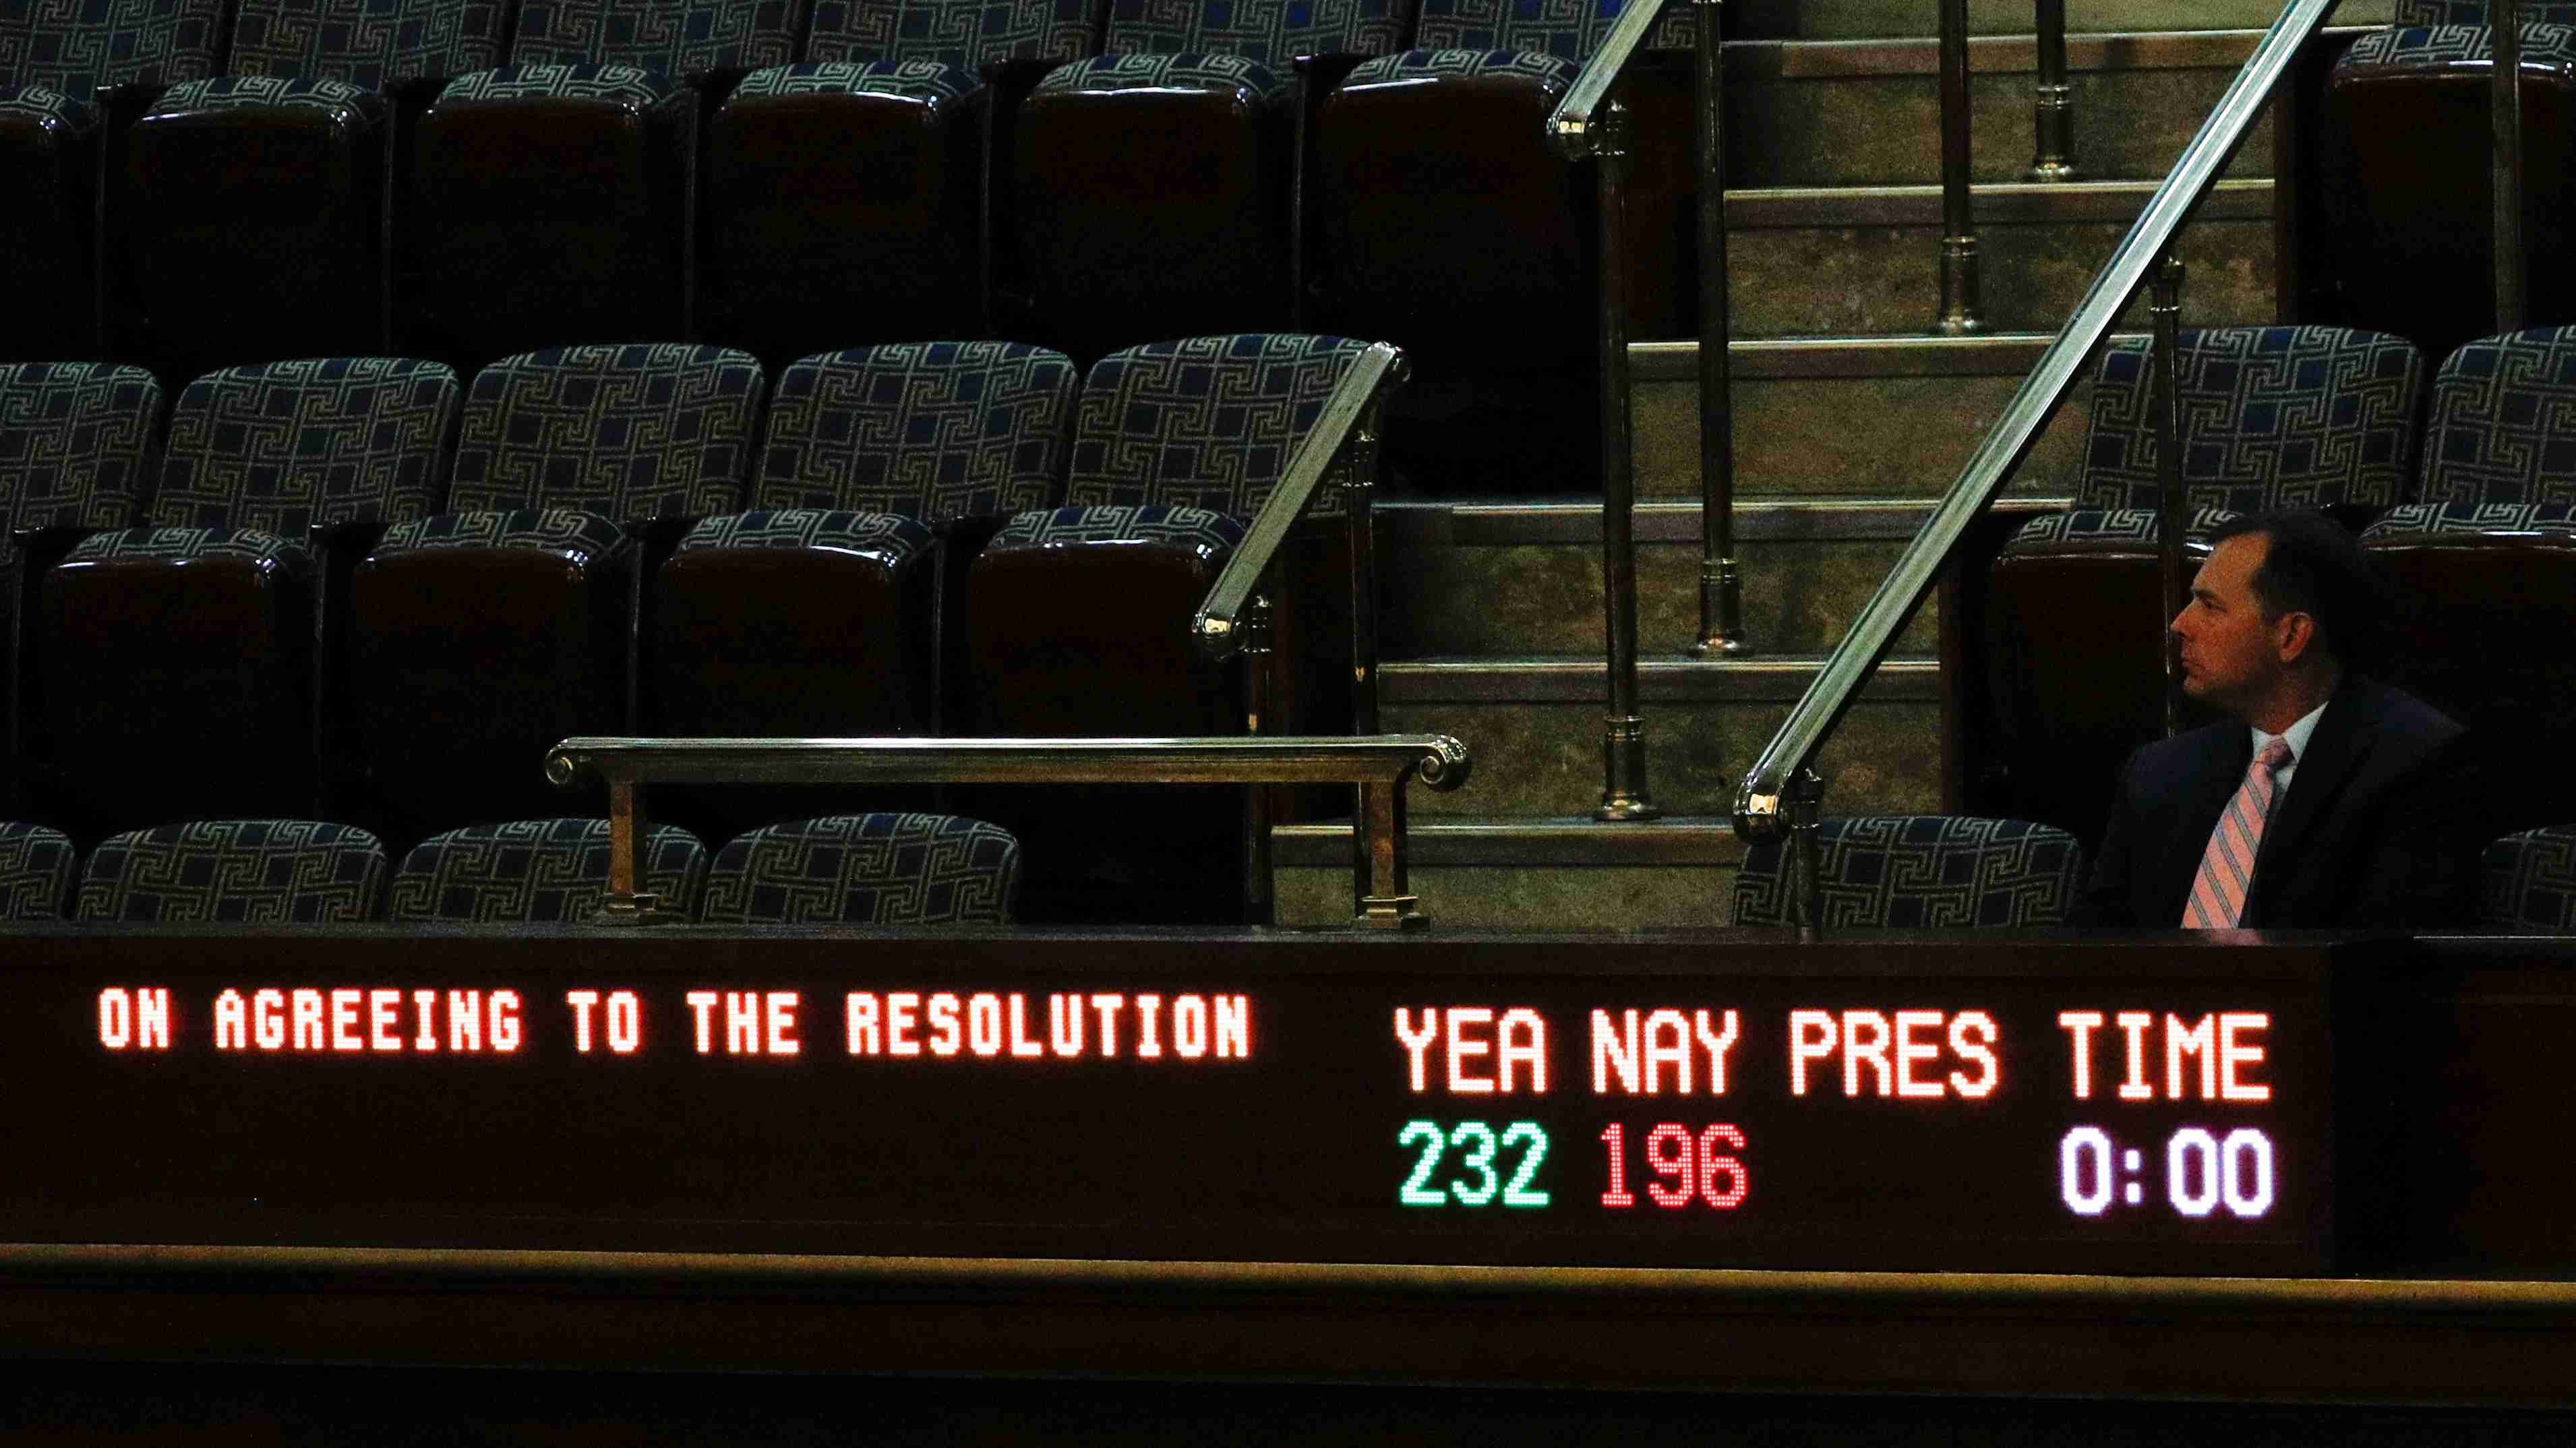 A man sits in the visitors gallery above the floor of the U.S. House of Representatives as a display board shows the final vote tallies of 232 Yea and 196 Nay on a resolution that outlines the next steps in the impeachment inquiry of U.S. President Donald Trump on Capitol Hill in Washington, U.S., October 31, 2019. REUTERS/Tom Brenner - RC1125BB6970